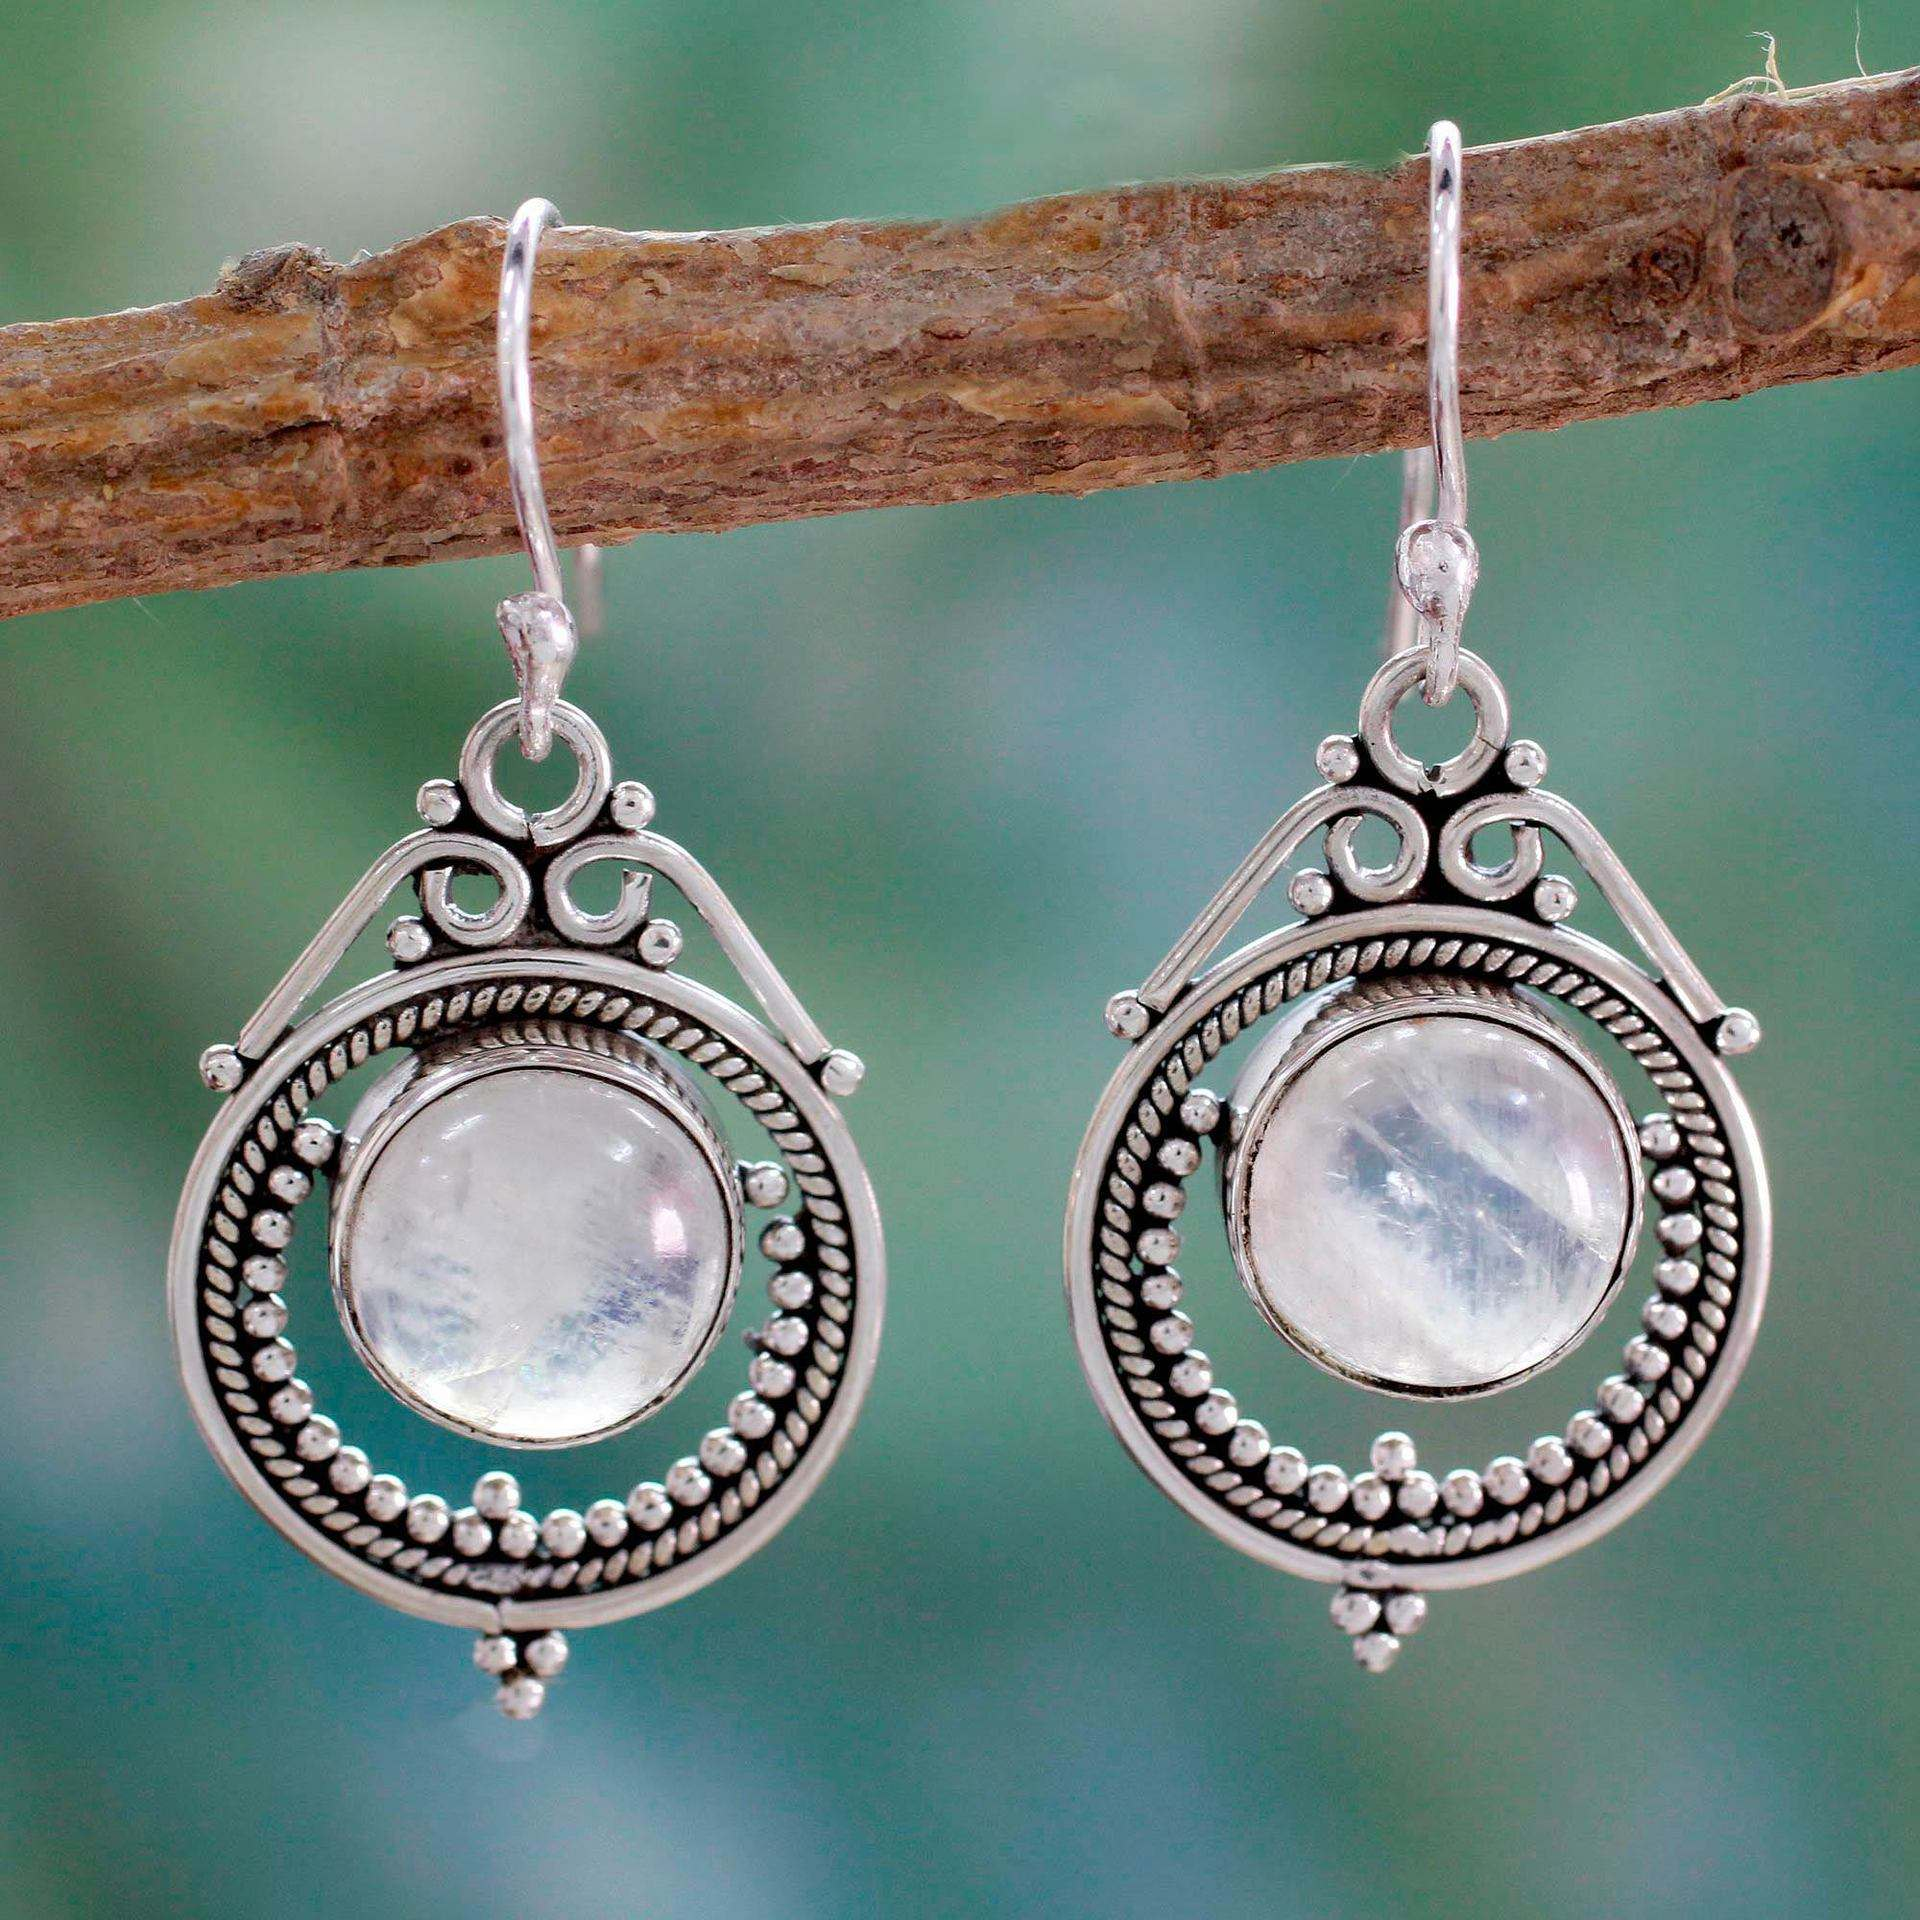 Vintage Mumbai Moon Moonstone Earrings European and American Handmade Silver Plated Dangle Earrings for Women Bohemian Jewelry